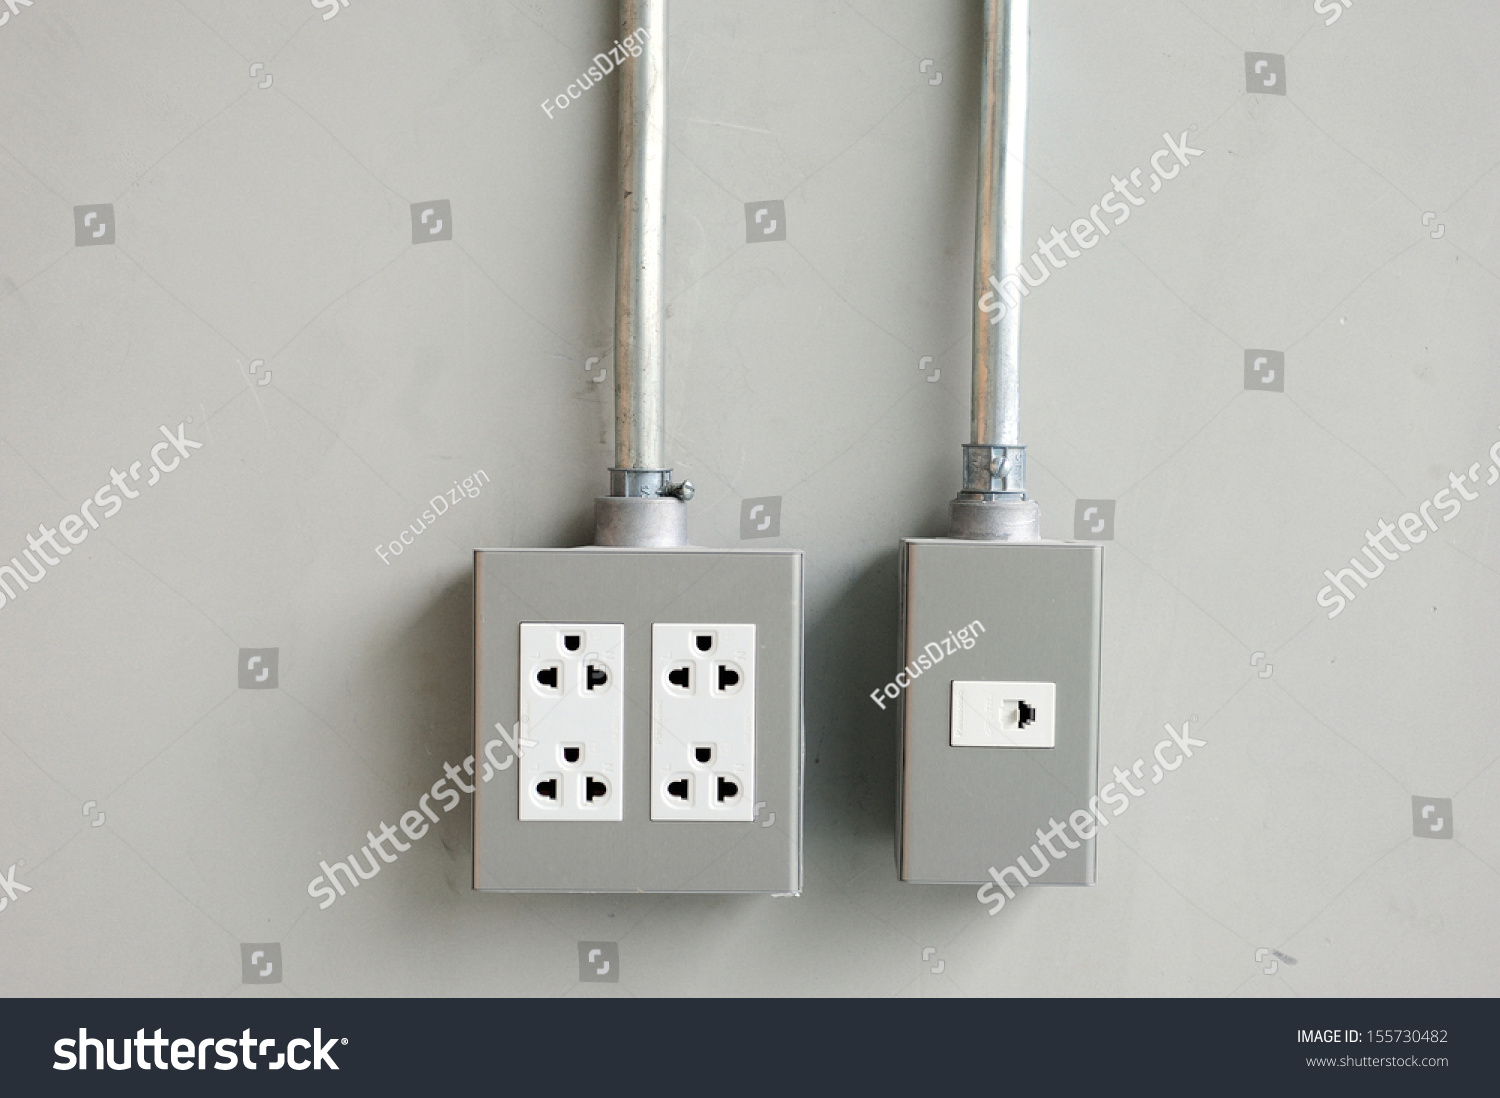 Electrical Outlet Light Switches On Cement Stock Photo (Royalty Free ...